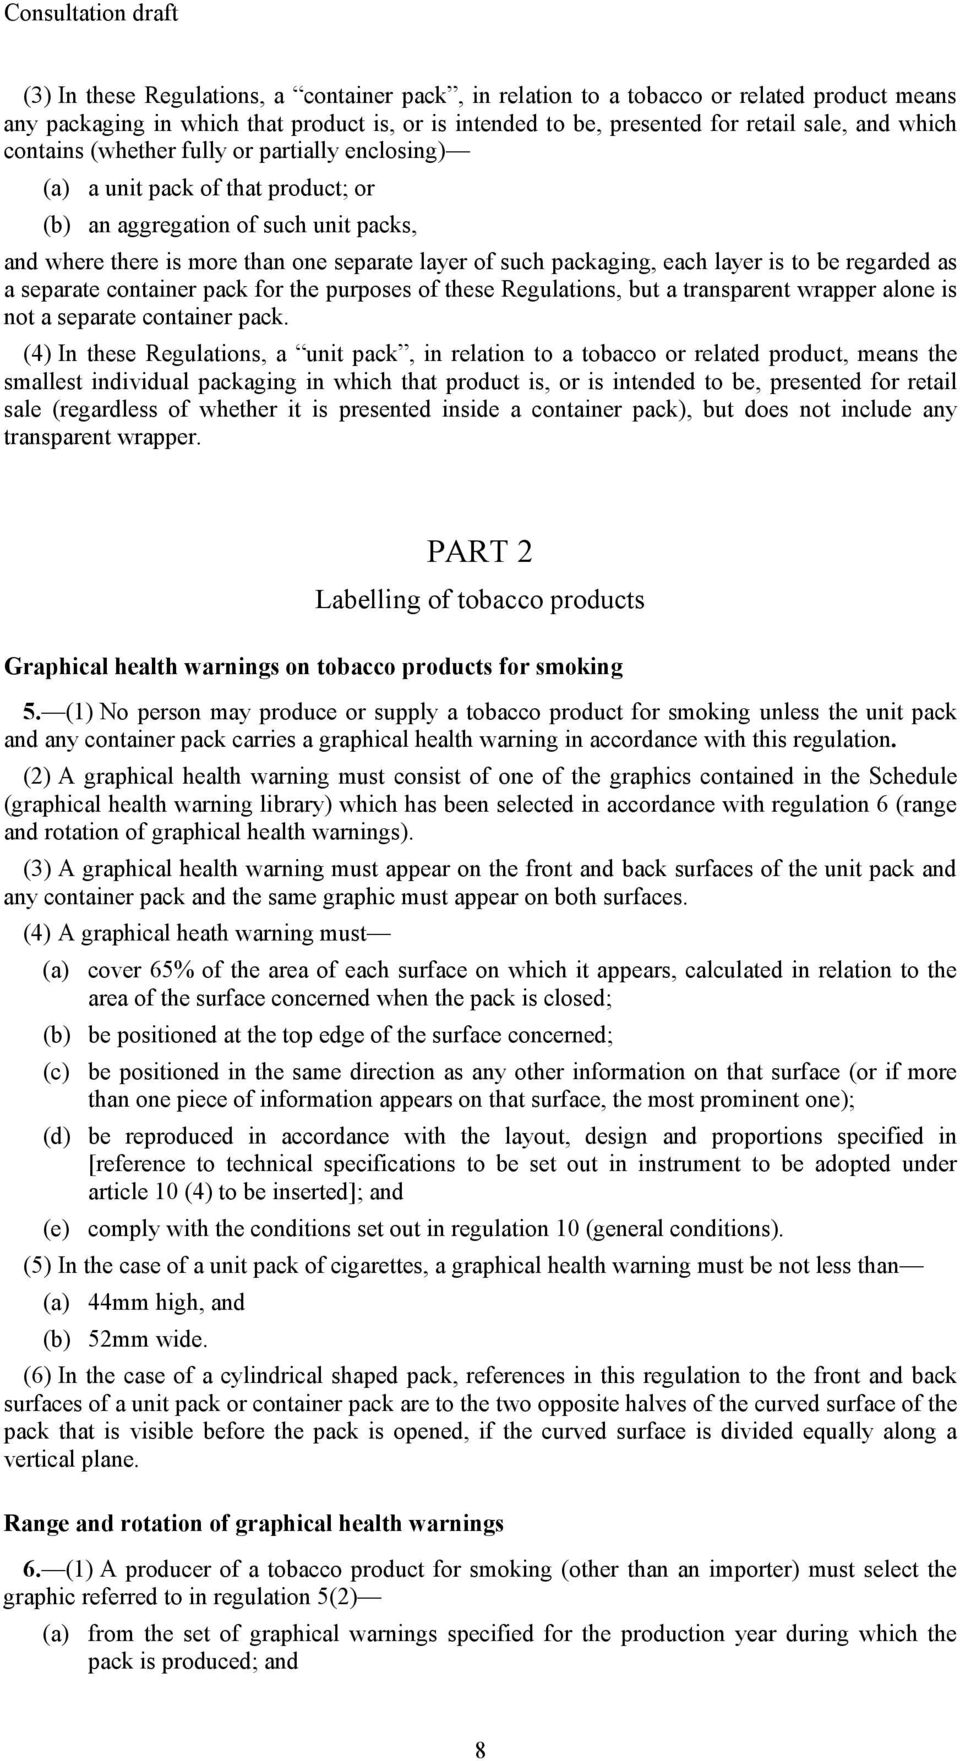 layer is to be regarded as a separate container pack for the purposes of these Regulations, but a transparent wrapper alone is not a separate container pack.